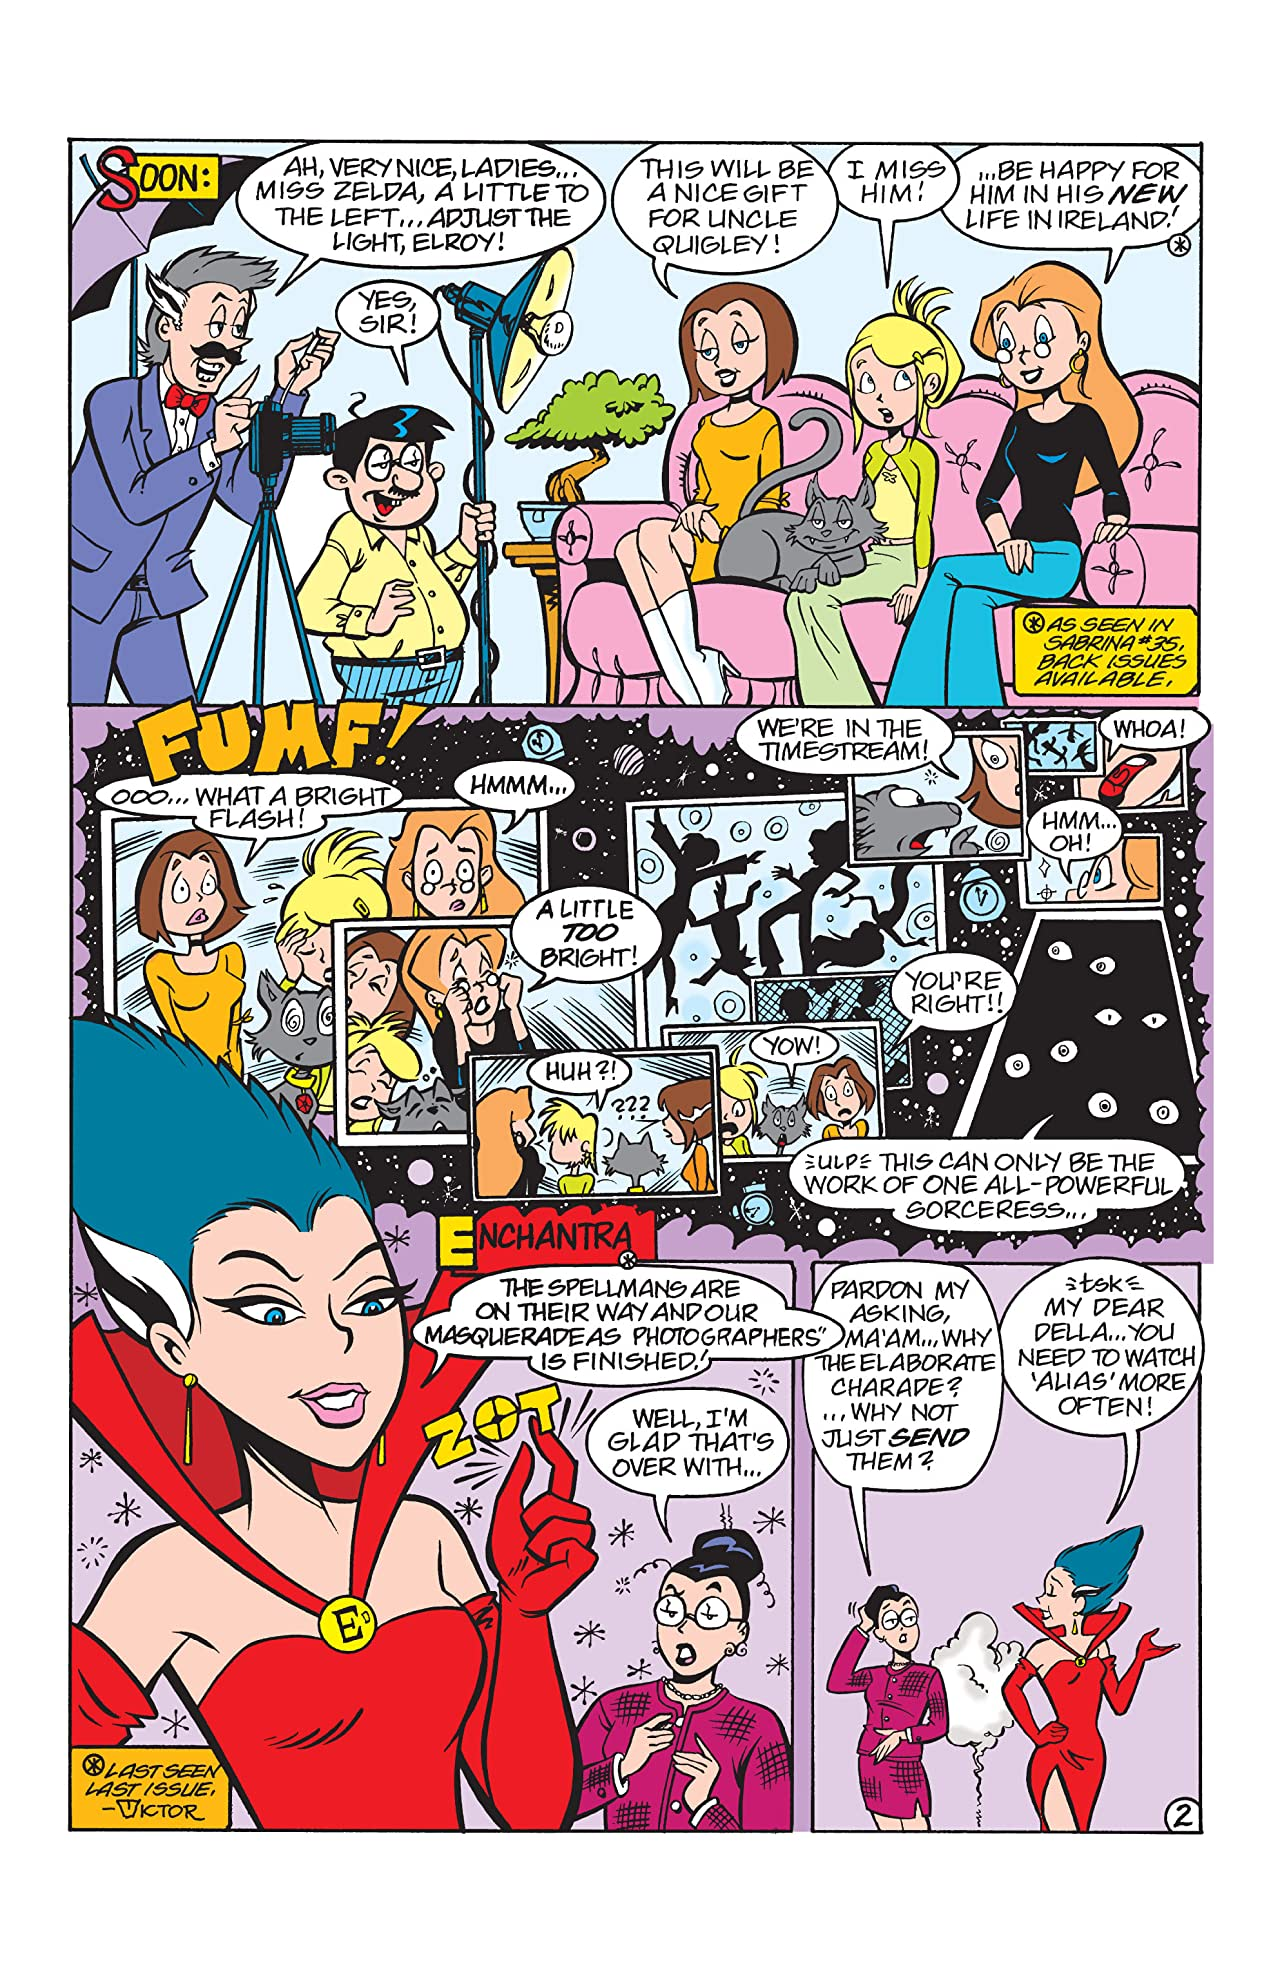 Sabrina the Teenage Witch #38